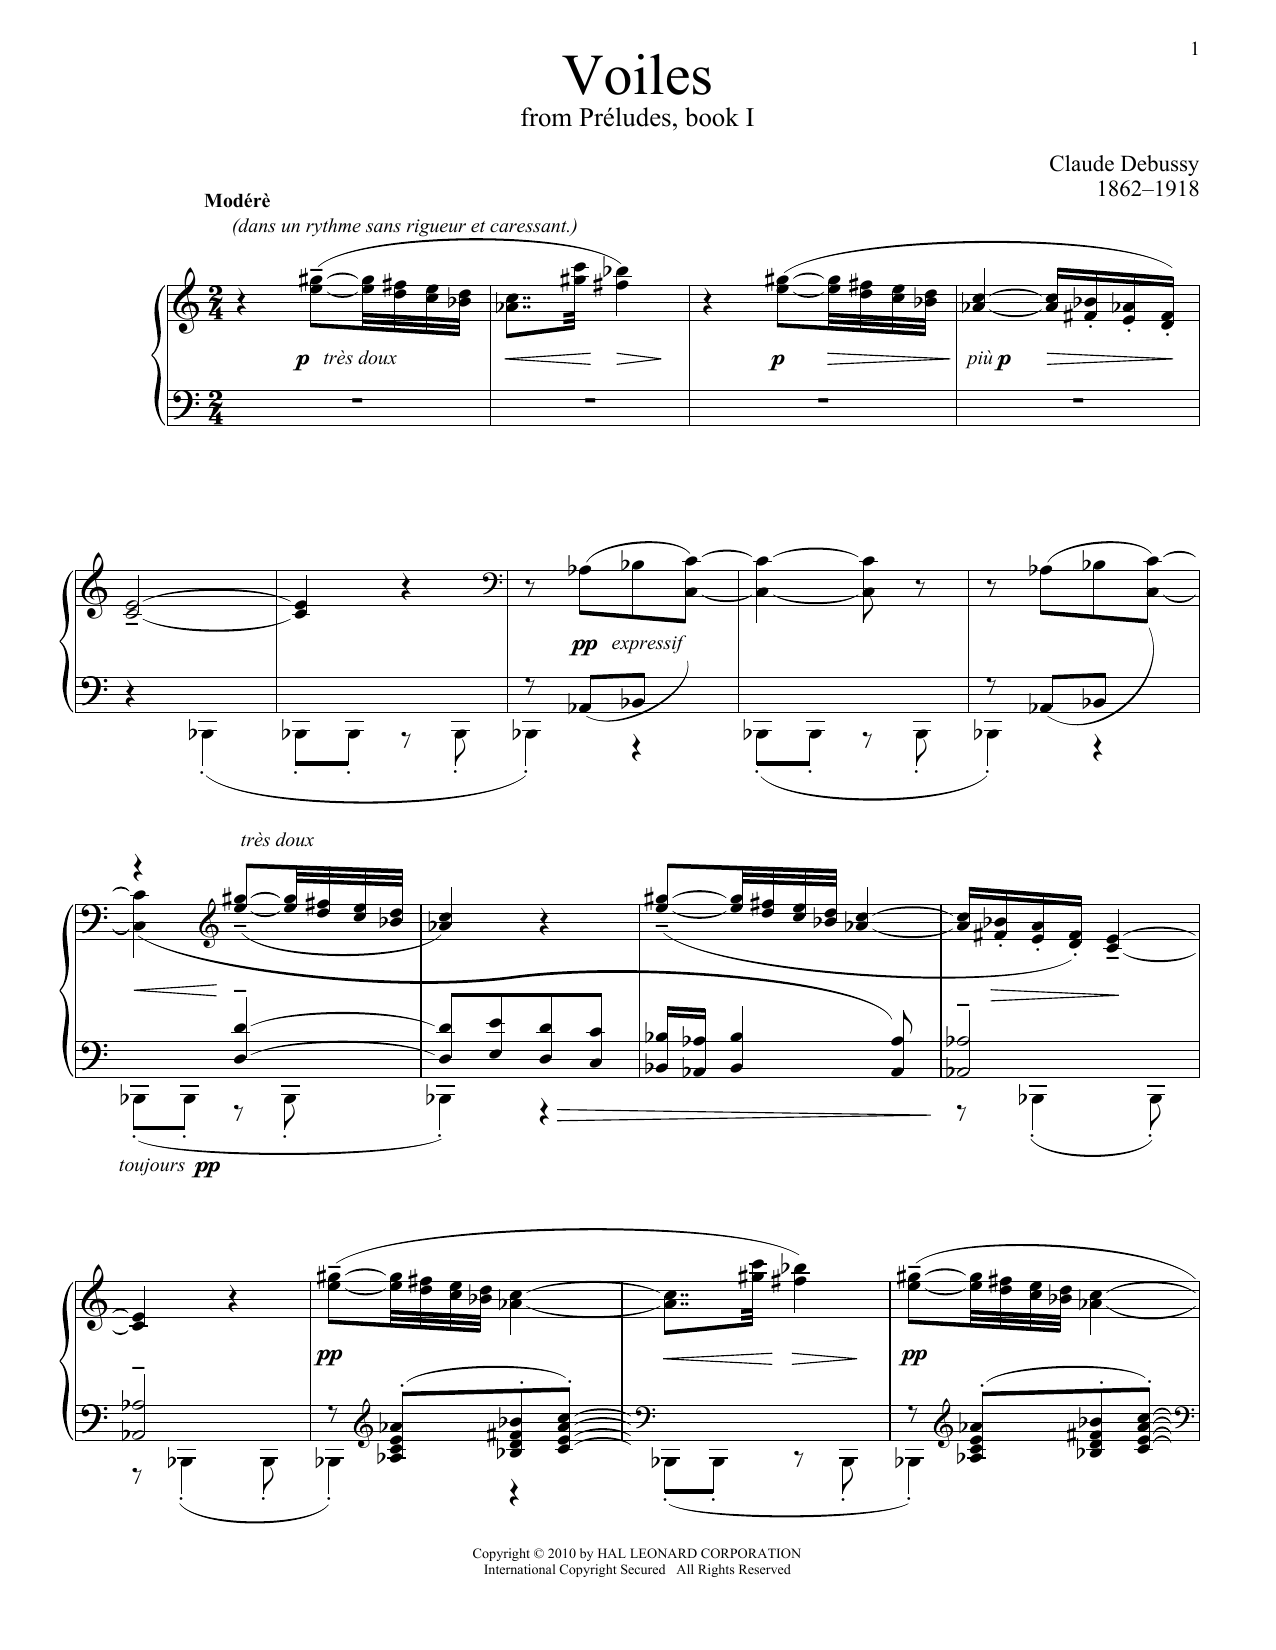 Claude Debussy Voiles sheet music notes and chords. Download Printable PDF.